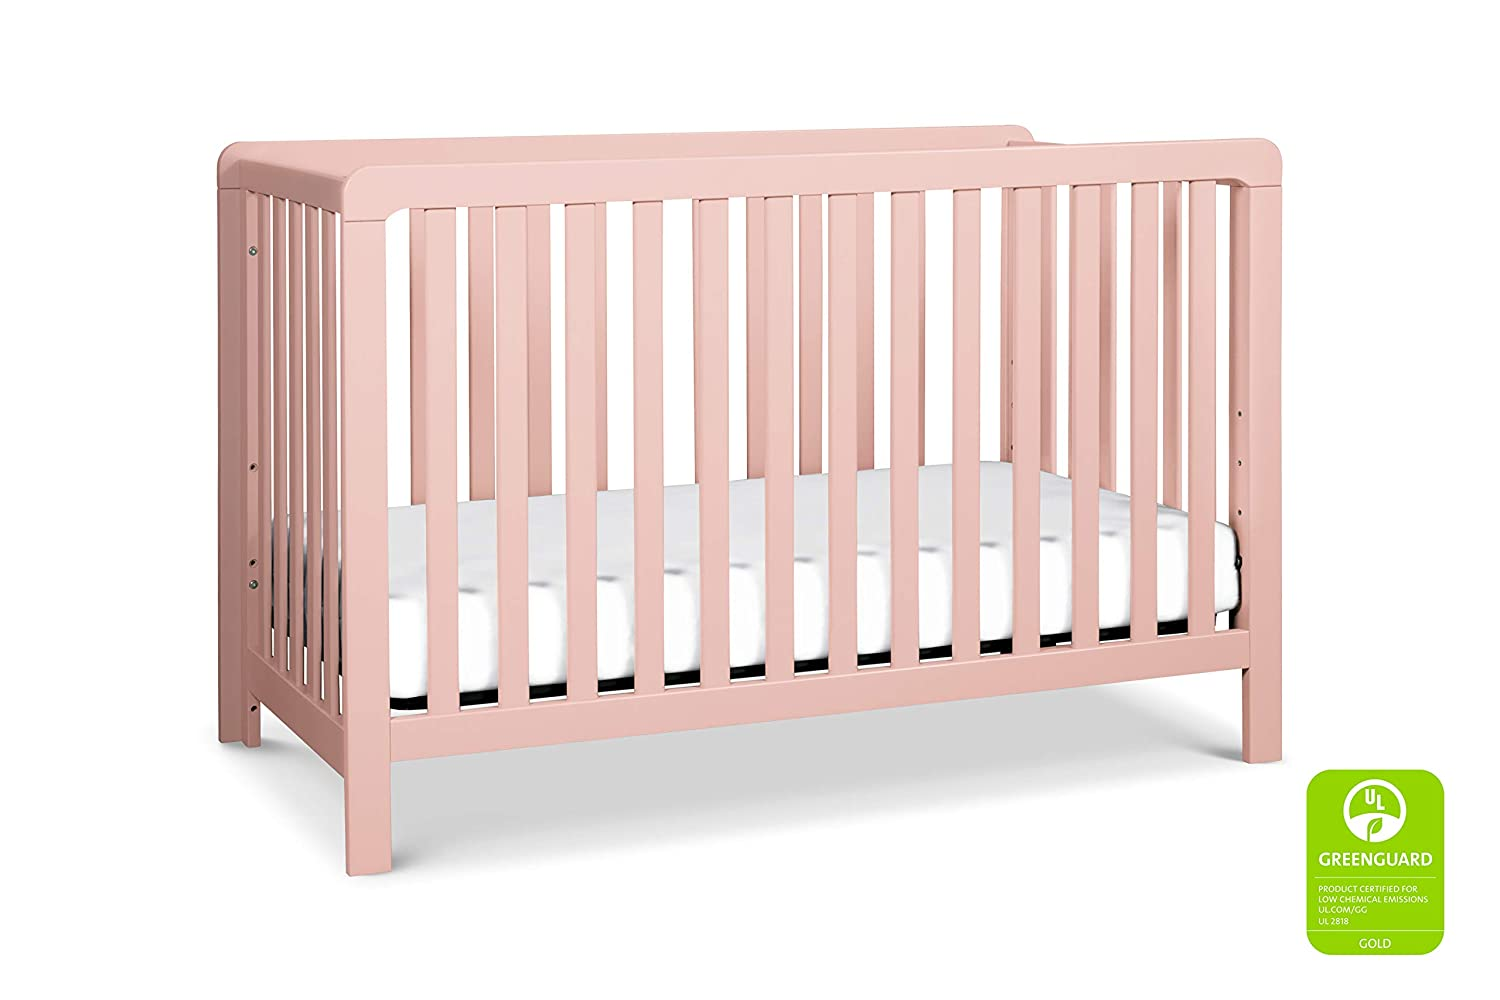 Carter s by DaVinci Colby 4-in-1 Low-Profile Convertible Crib in Petal Pink Greenguard Gold Certified